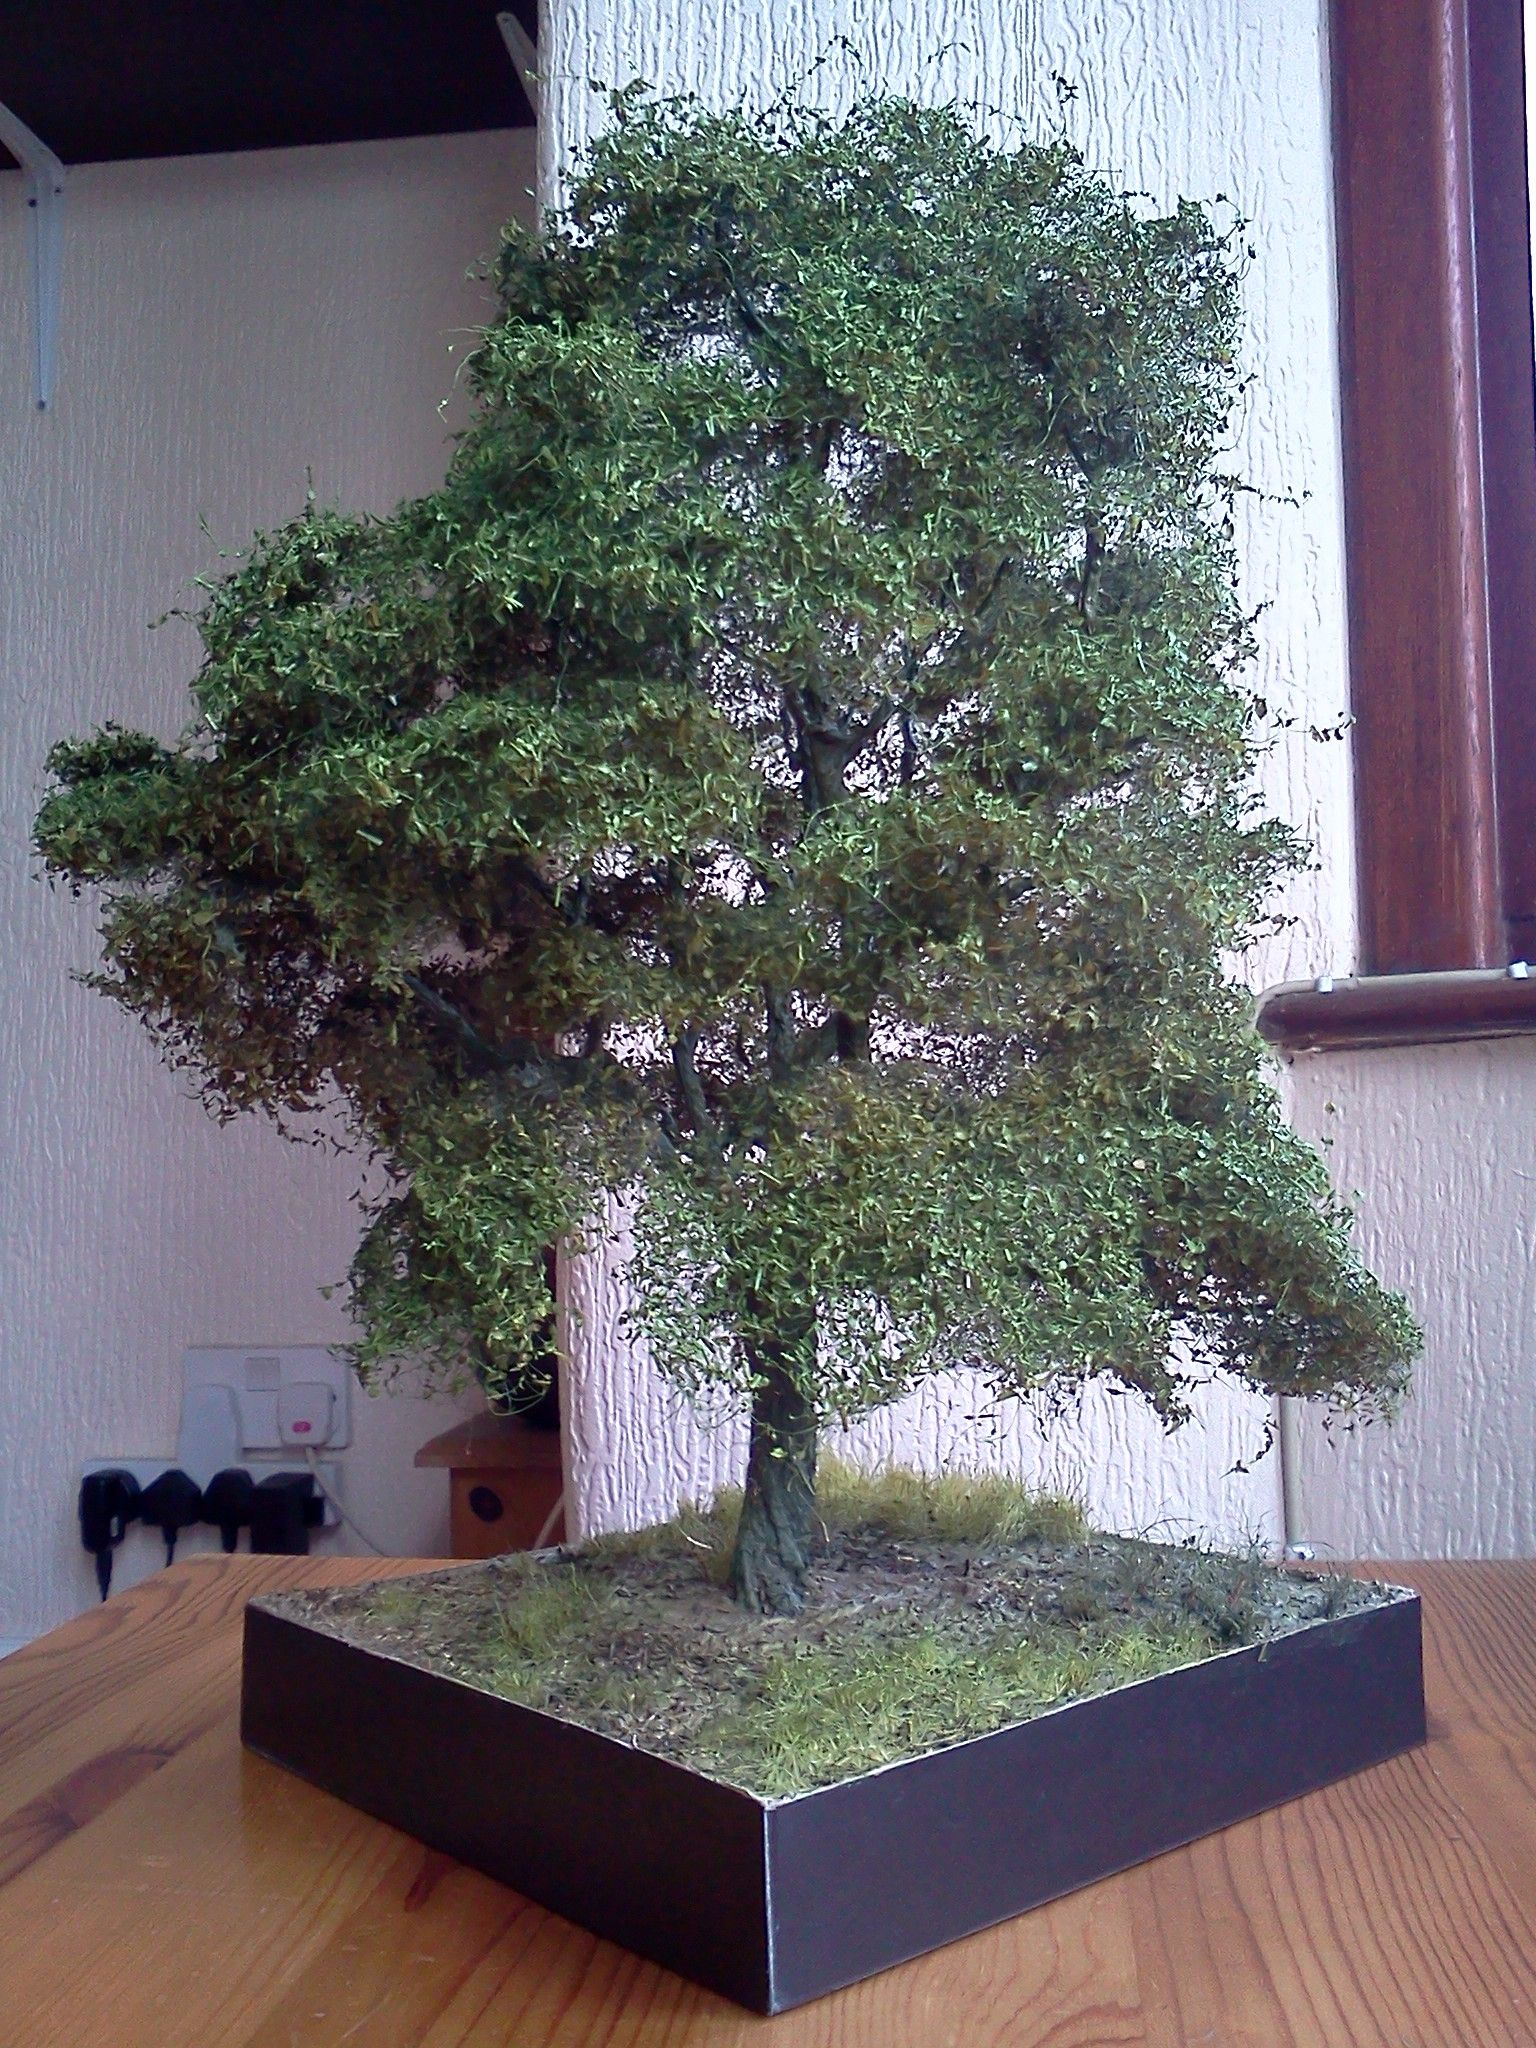 Ash Tree 1 35 Scale Diorama Base By Terence Young Miniature Trees Model Tree Model Train Scenery